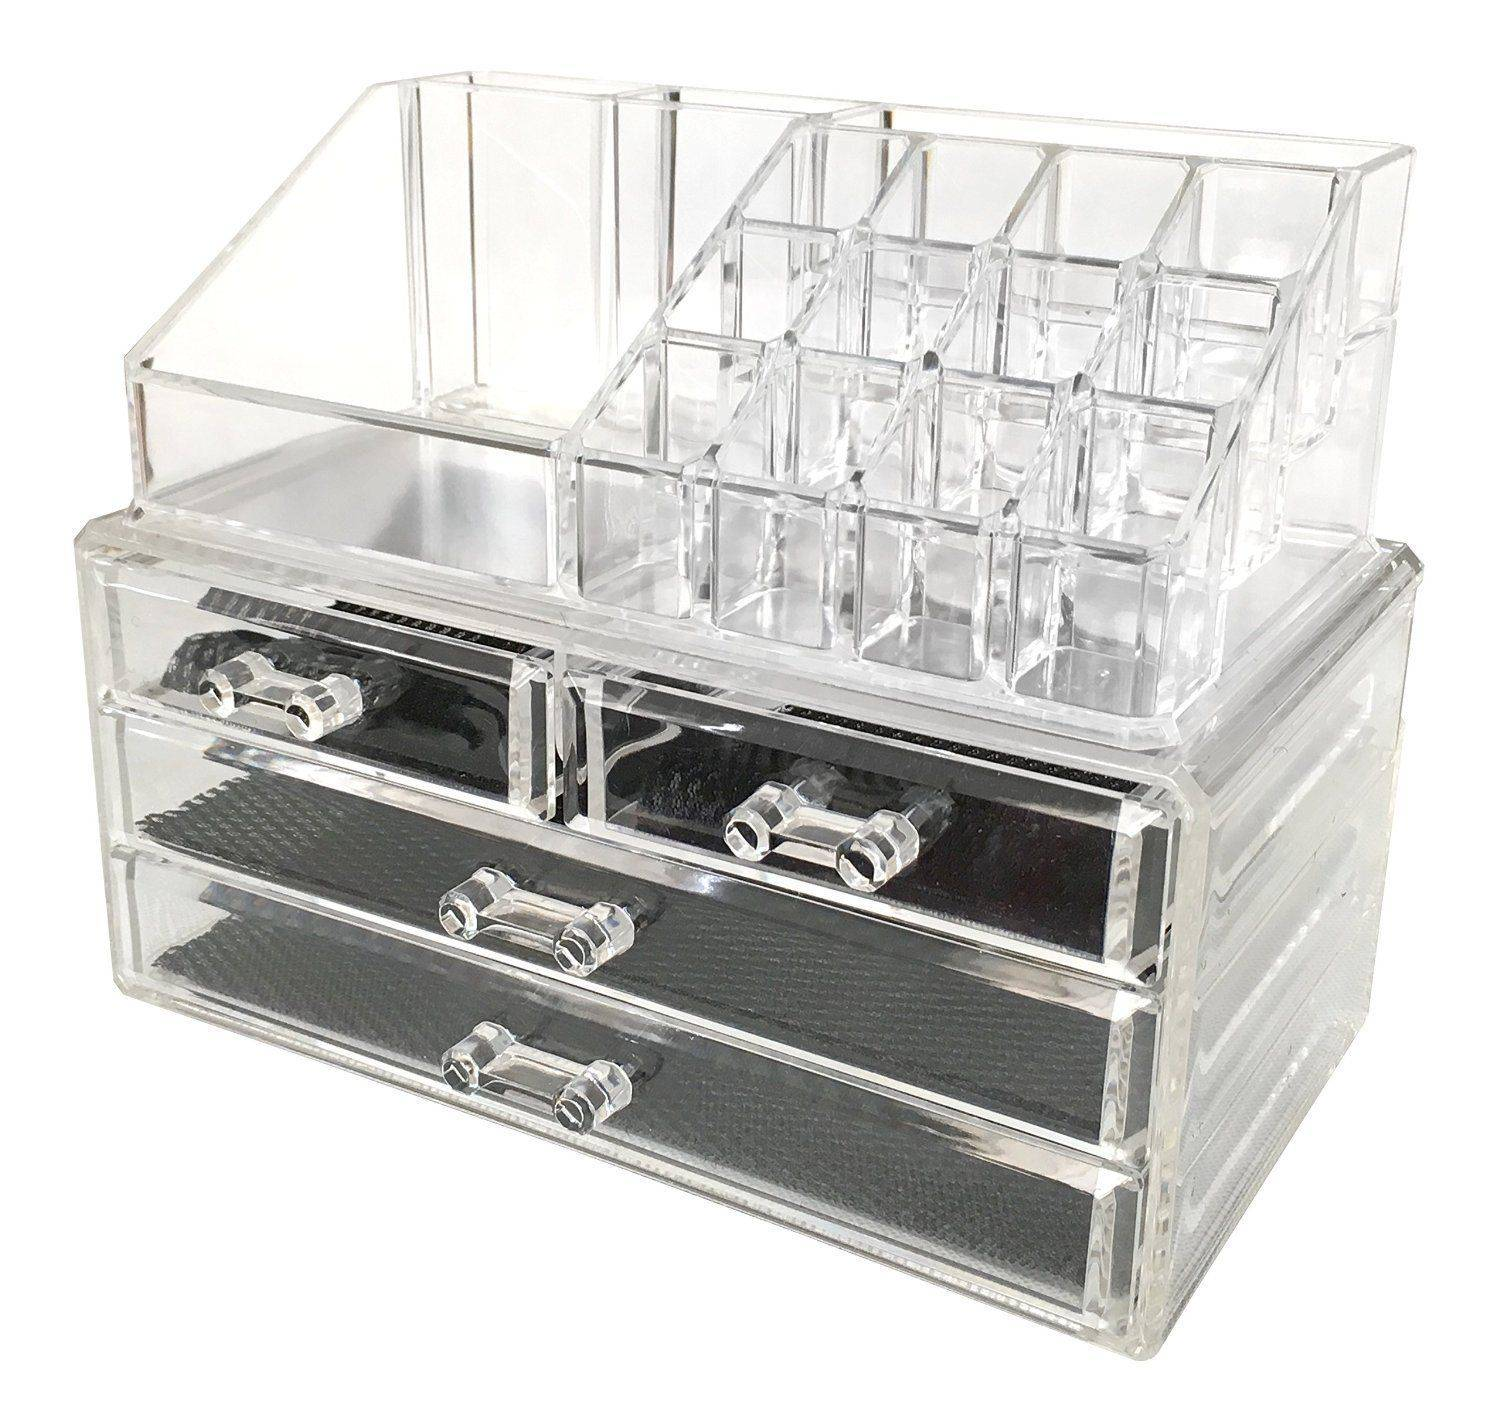 4 Drawers Makeup Organizer bo SDL 1 7271f